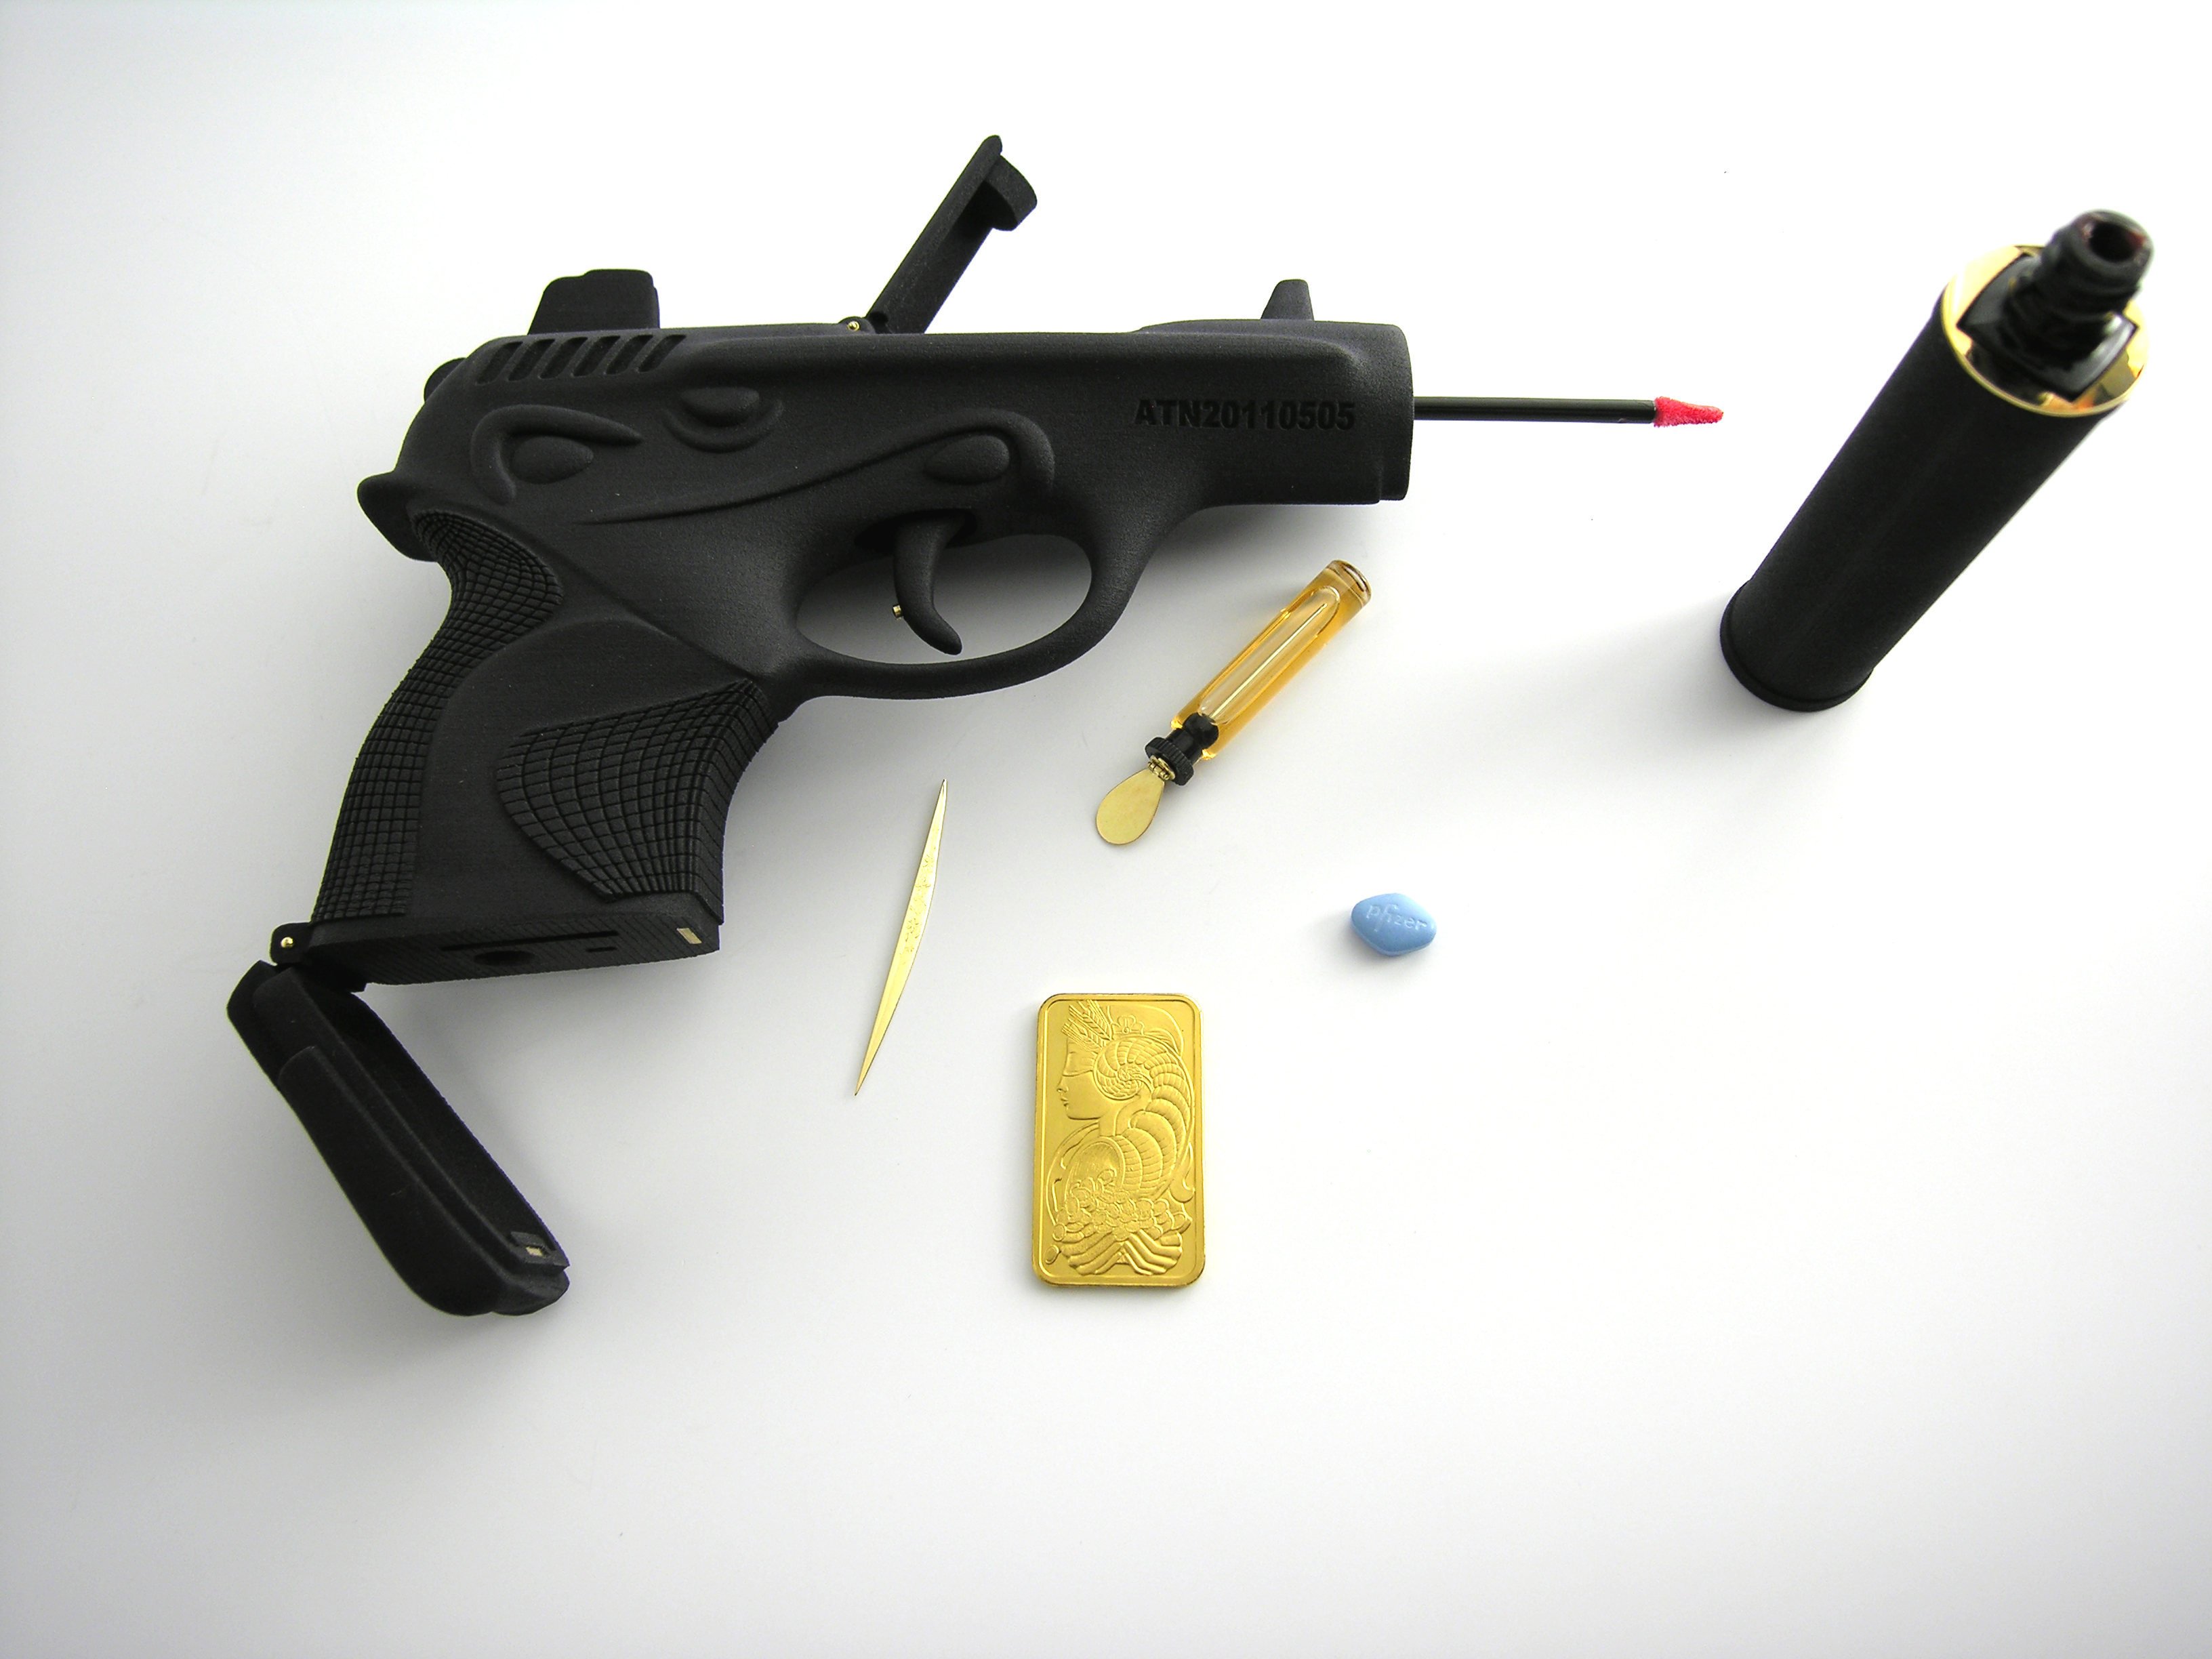 in silencer), the loading chamber serves as a pill compartment (complete with pills, including Viagra), 50 grams of certified and decorated gold bullion